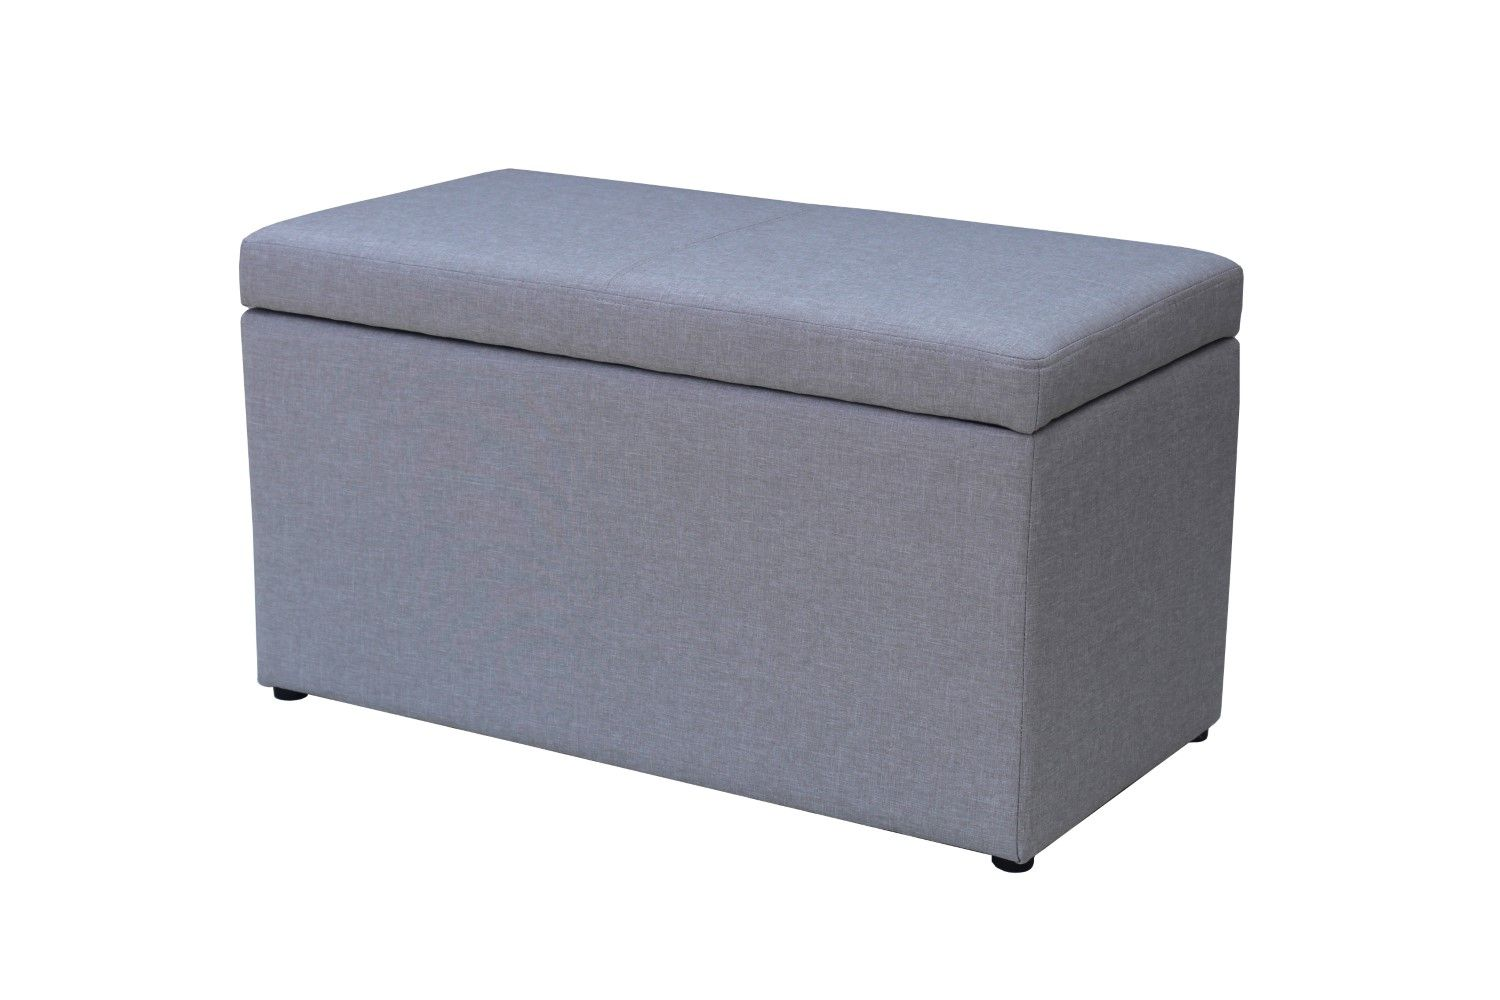 7c5047f8e178ca61f11e2934c216a574 - Better Homes And Gardens 30 Hinged Storage Ottoman Brown